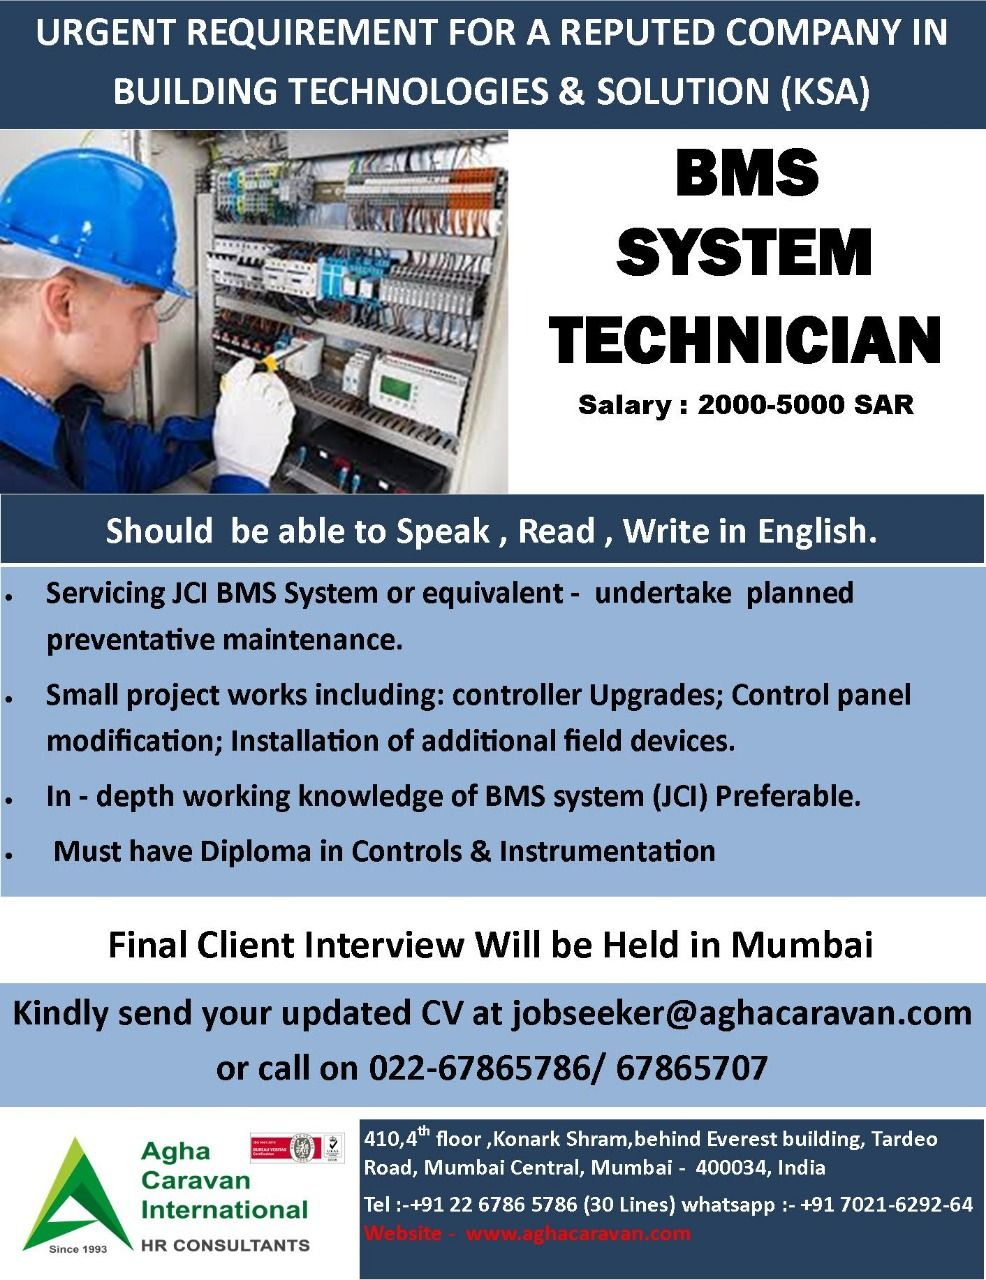 Urgentlyrequired Bms System Technician For One Of The Leading